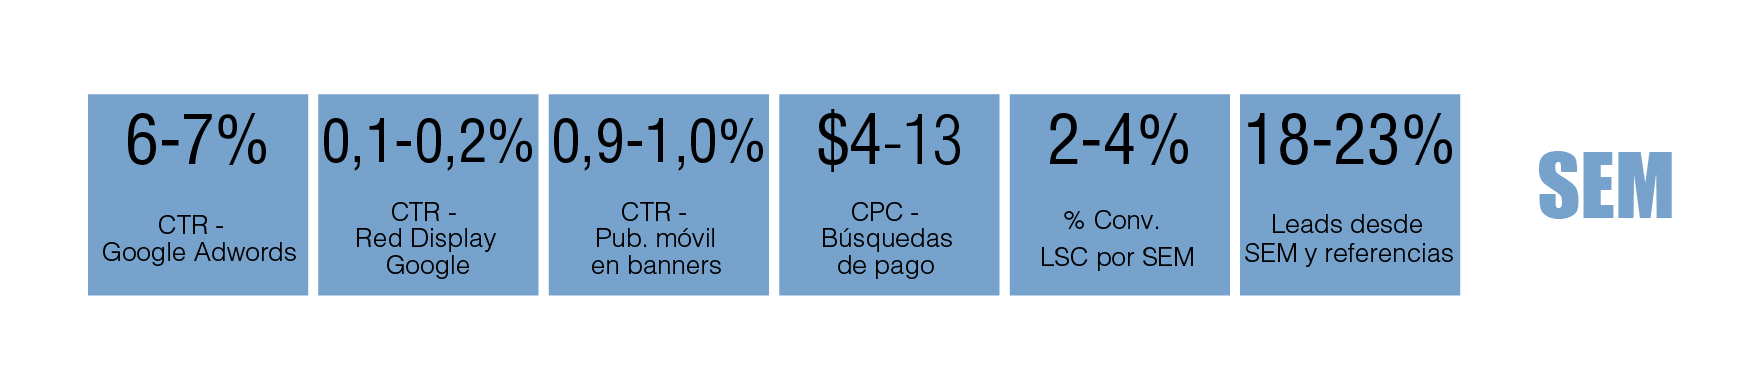 tabla periódica de marketing digital B2B: SEM